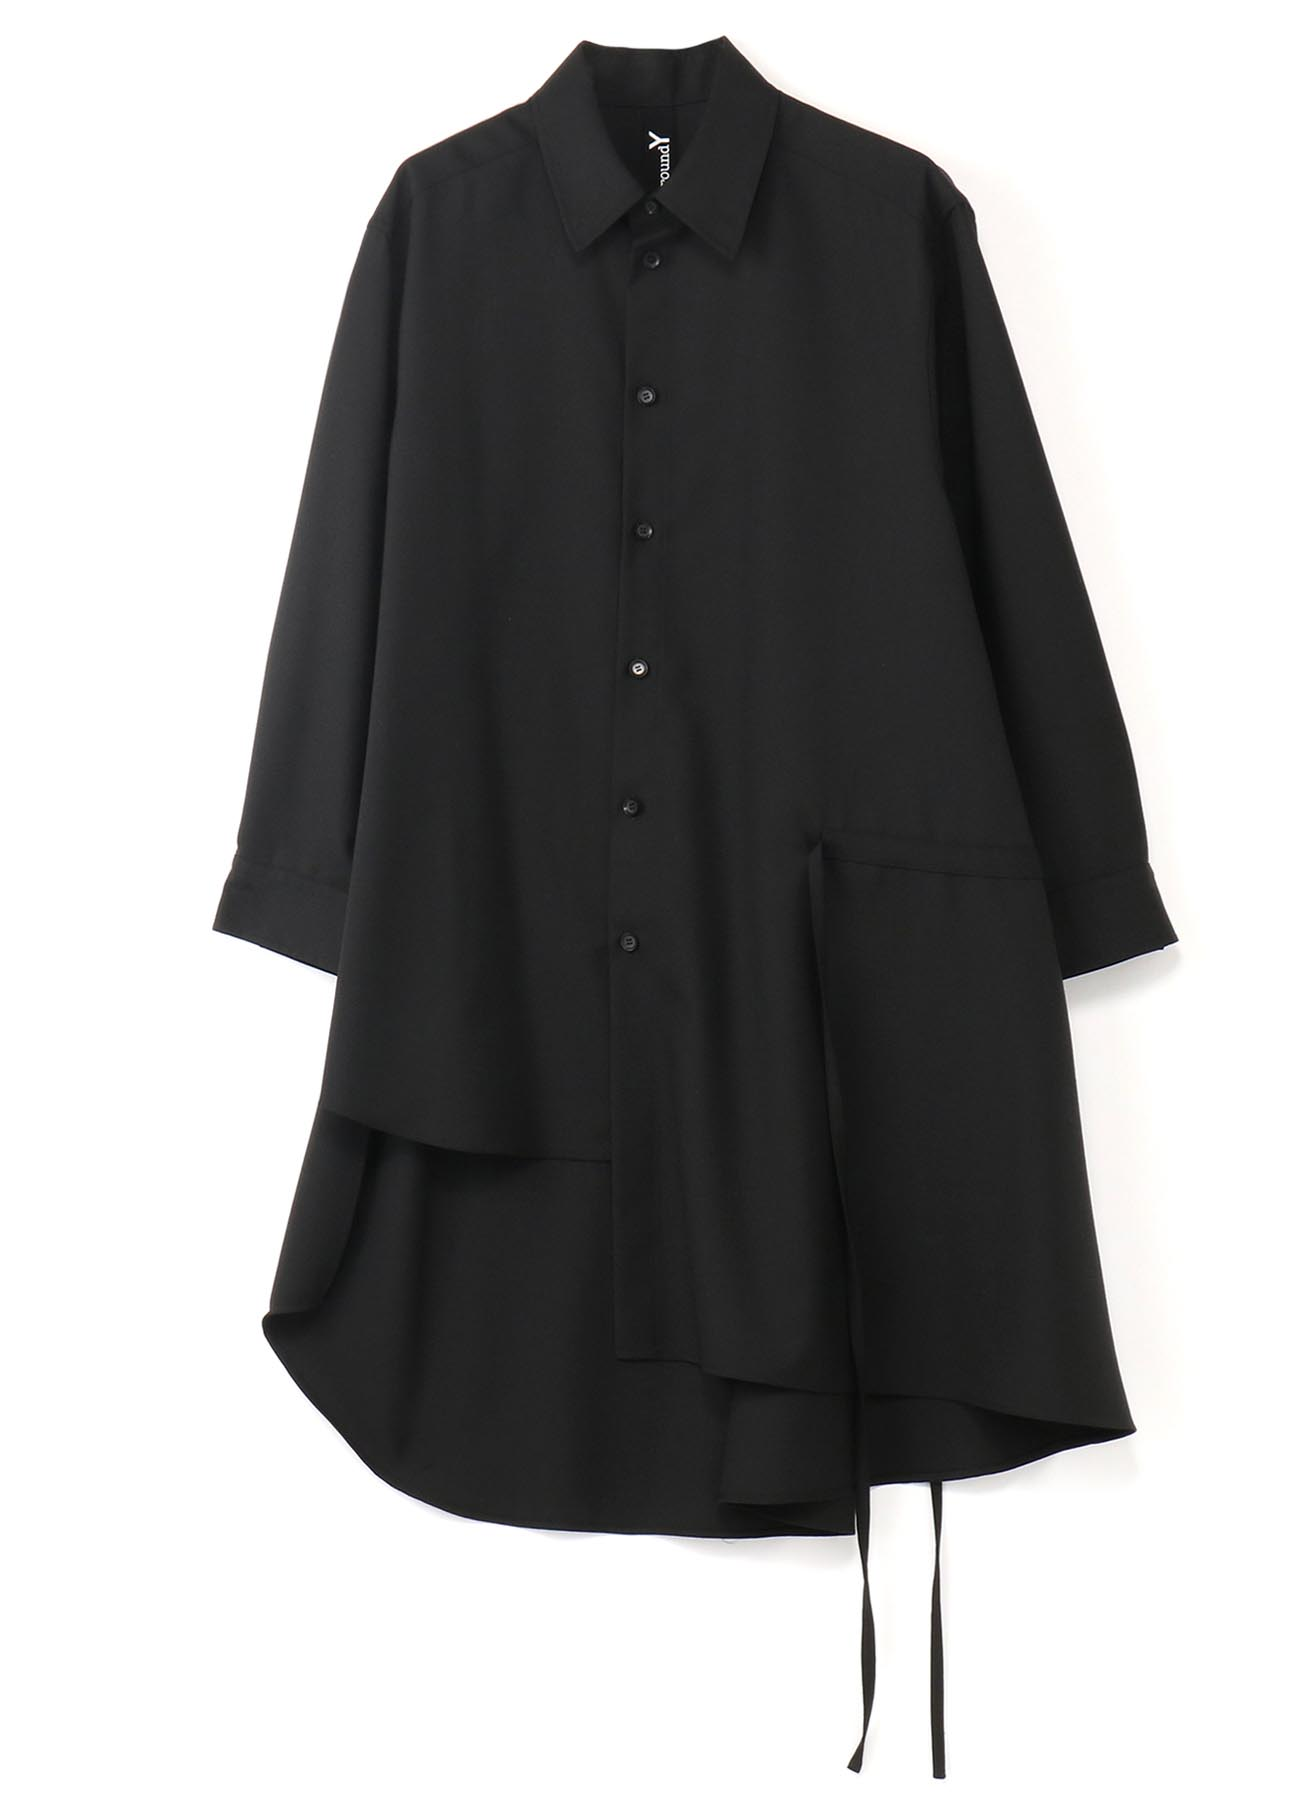 T/W Gabardine Gather Drape Shirt